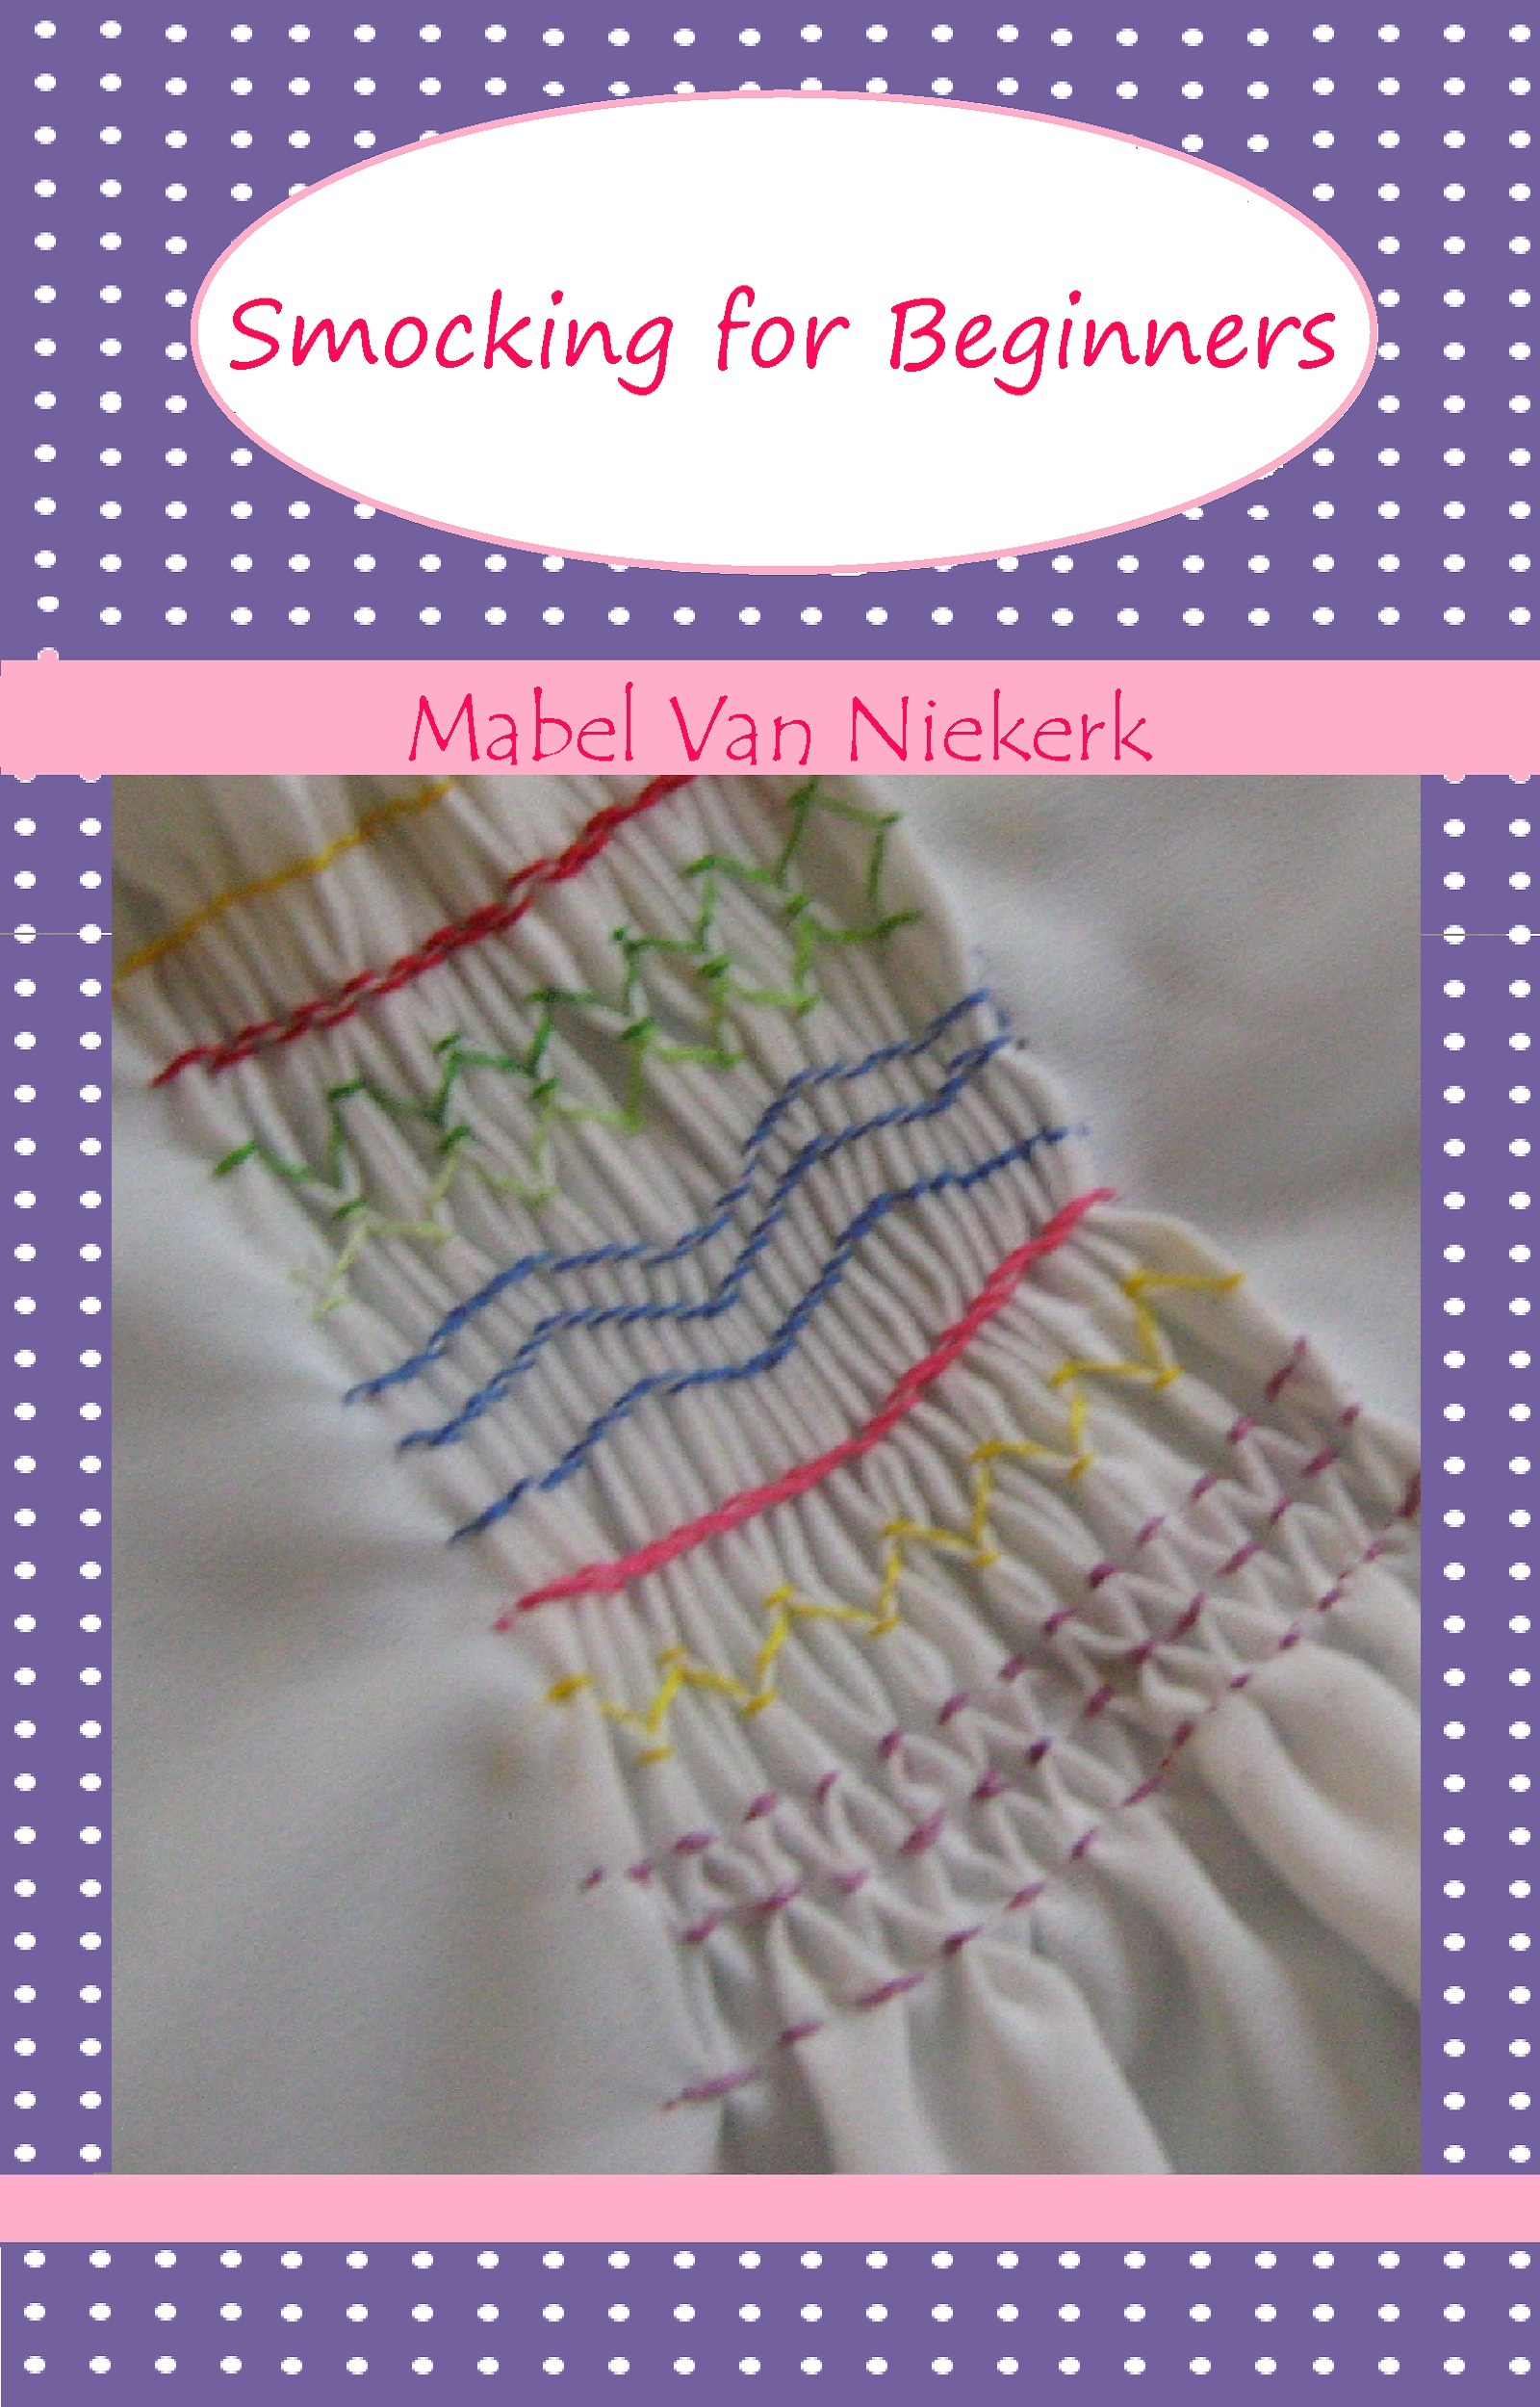 Smocking for Beginners